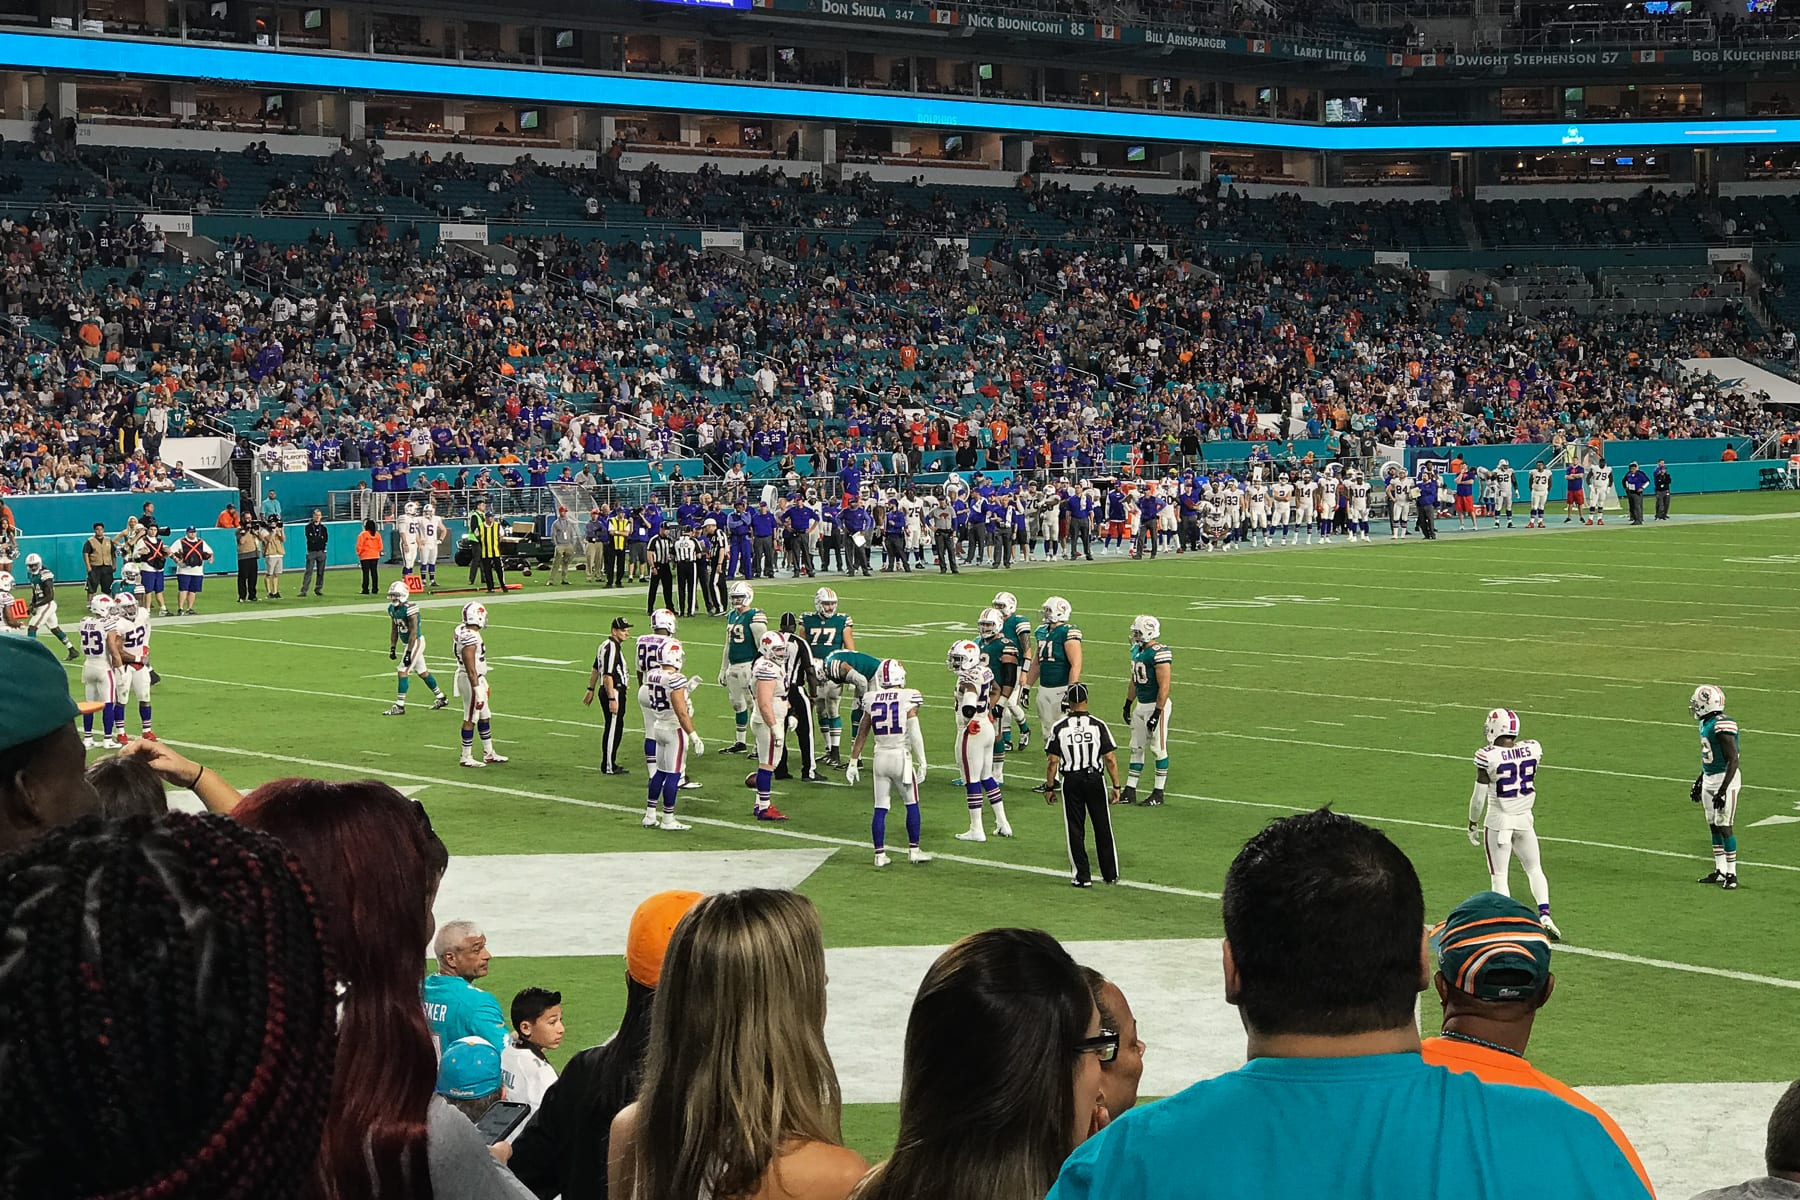 15-FL-journey-miami-dolphins04.jpg